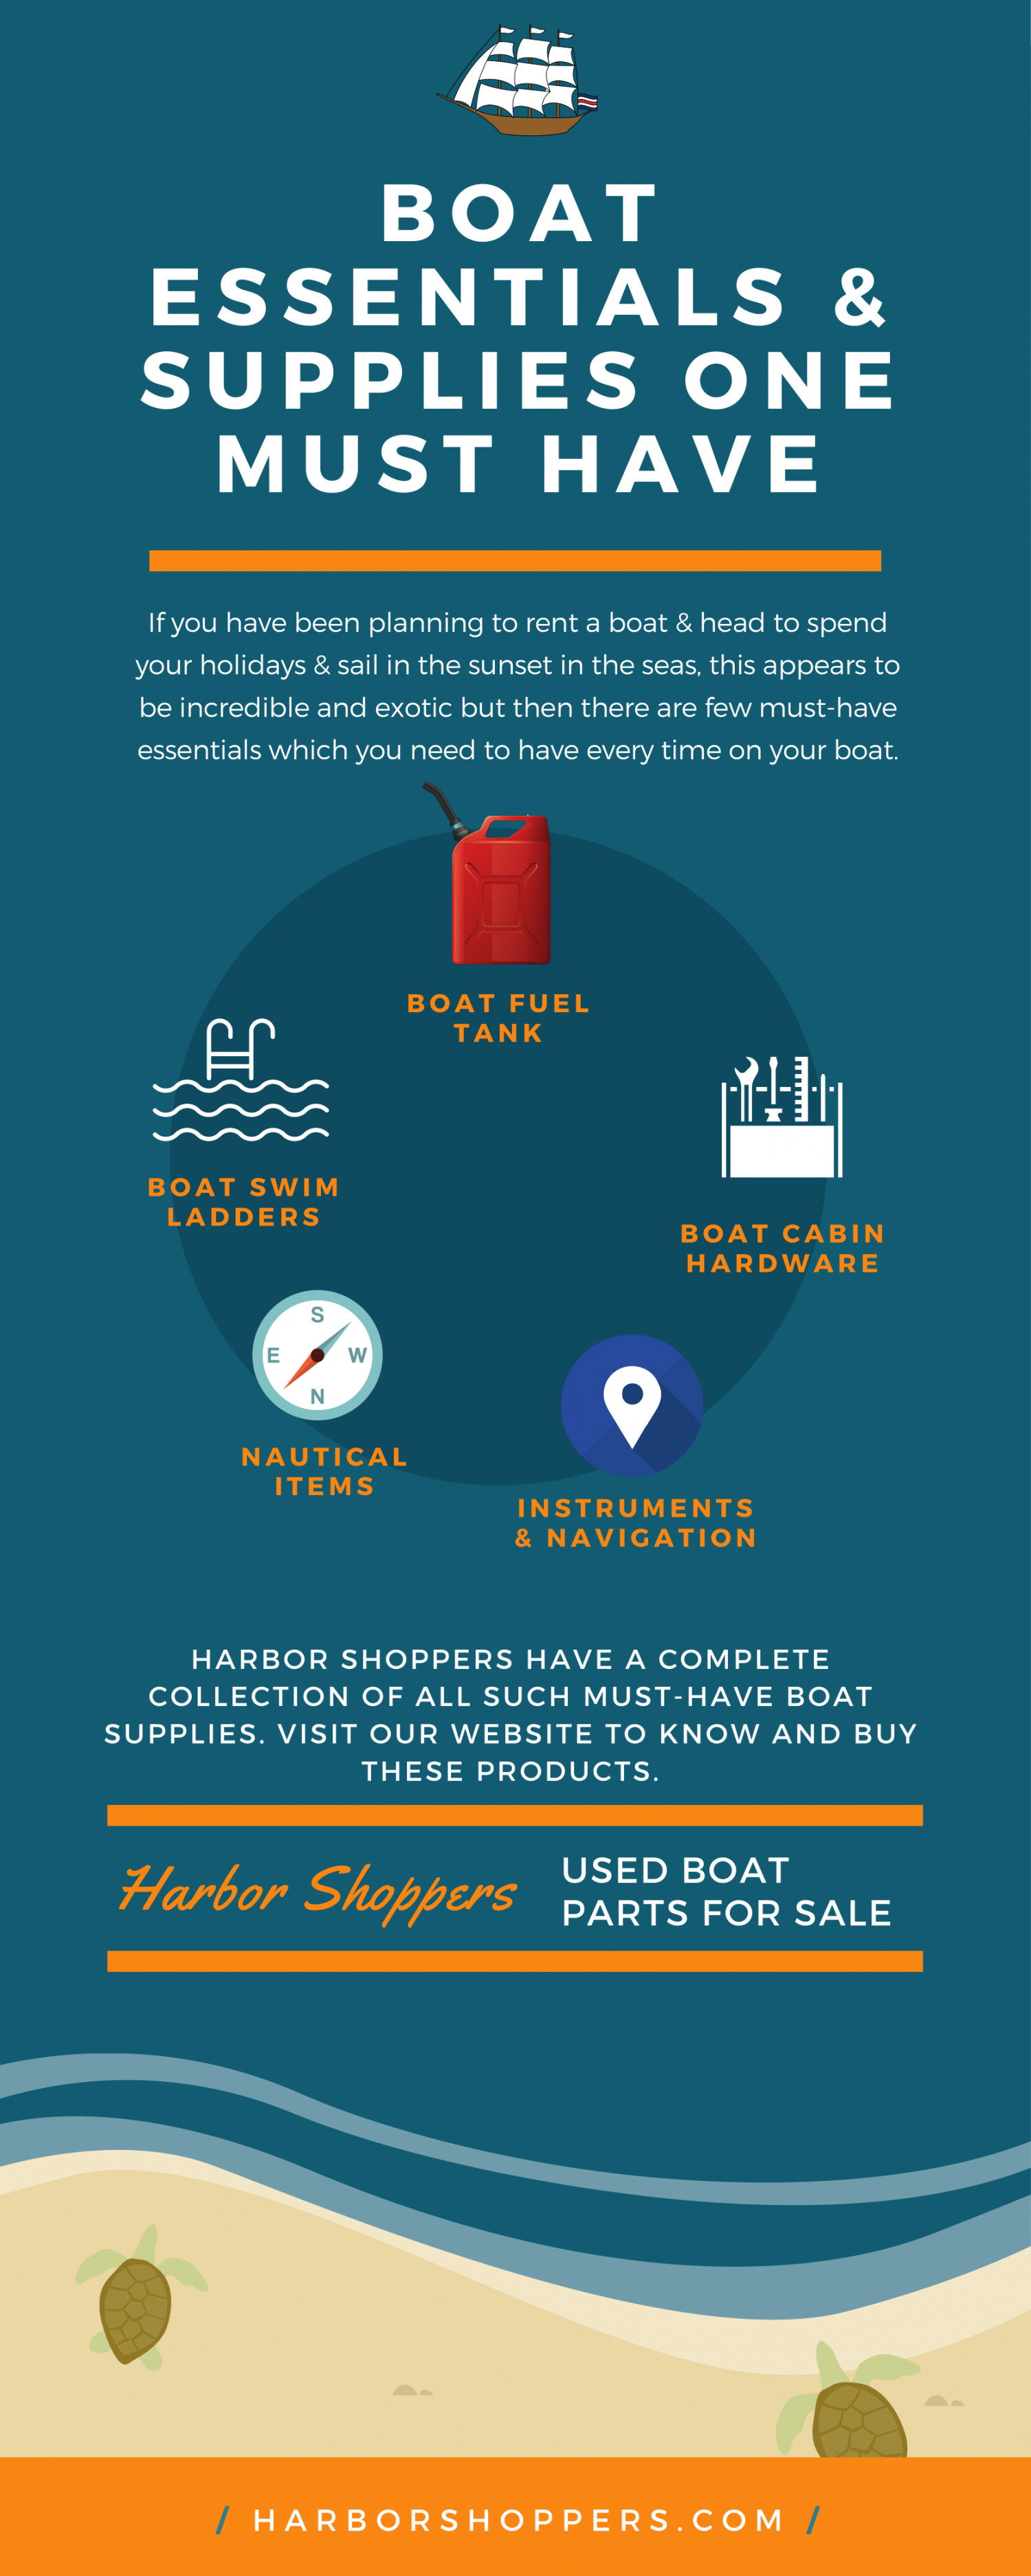 Boat Essentials & Supplies One Must Have - Harbor Shoppers Infographic